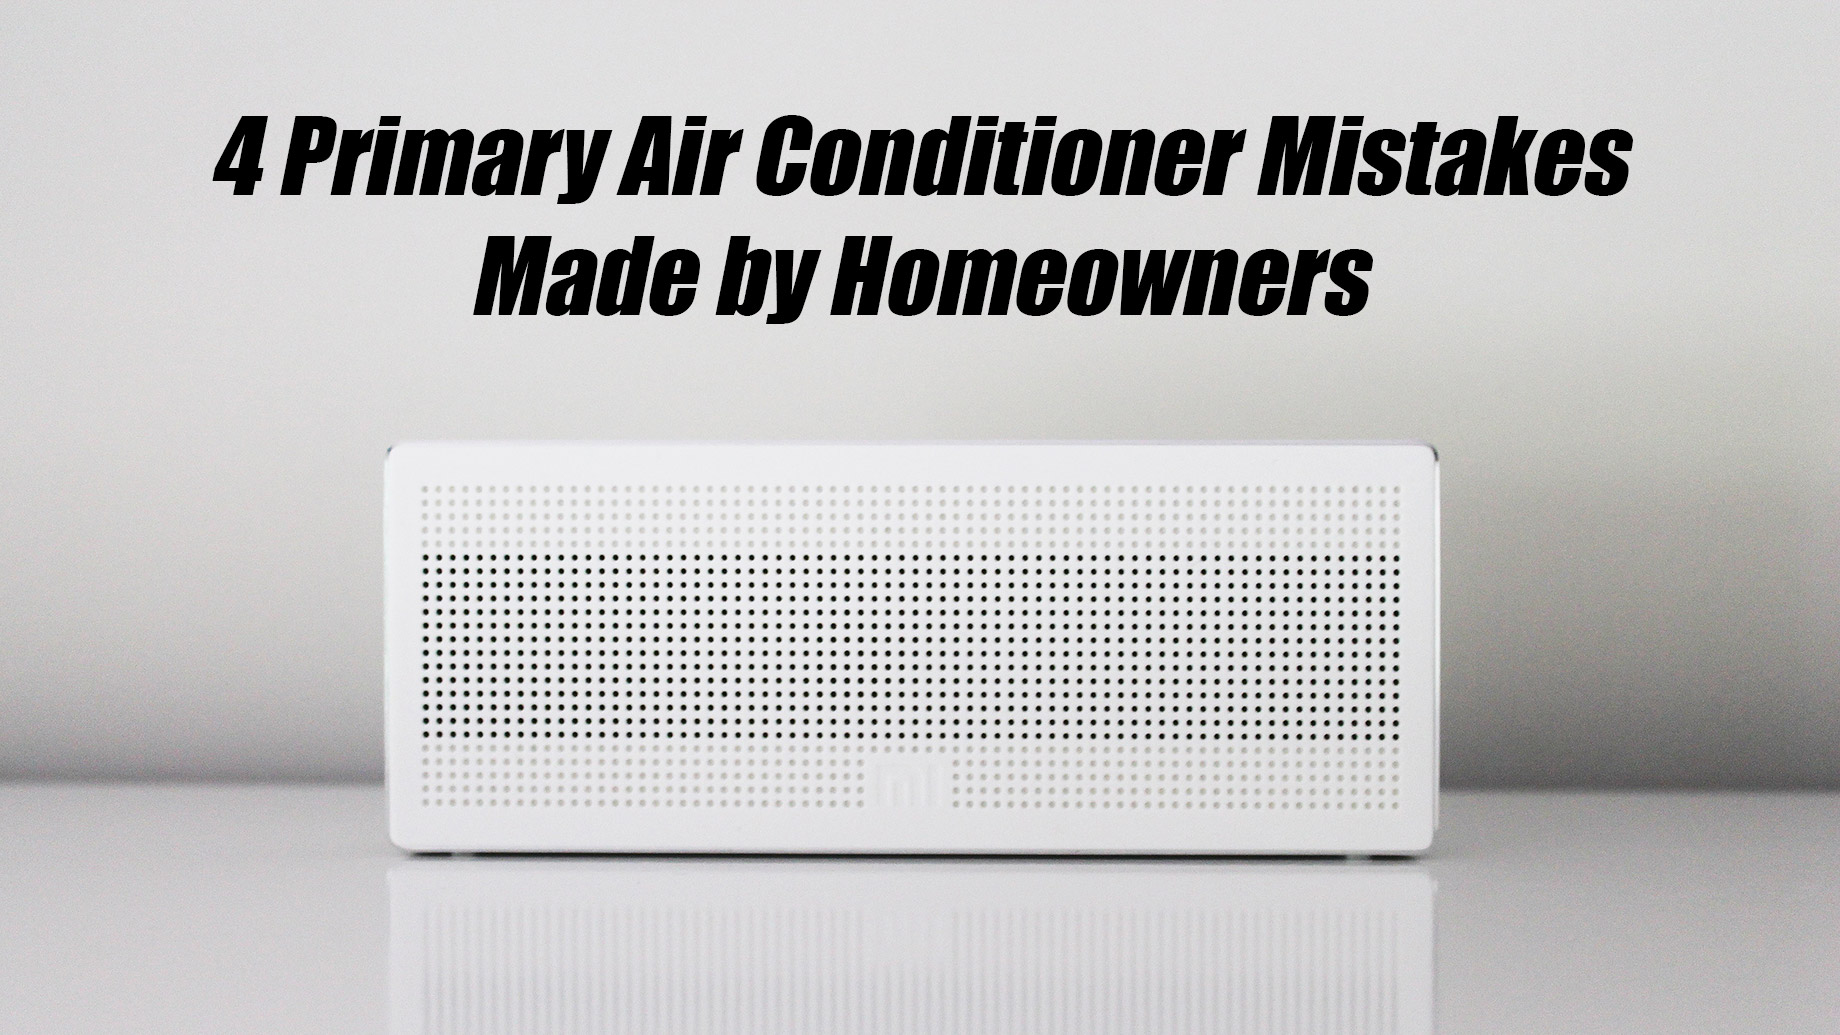 4 Primary Air Conditioner Mistakes Made by Homeowners